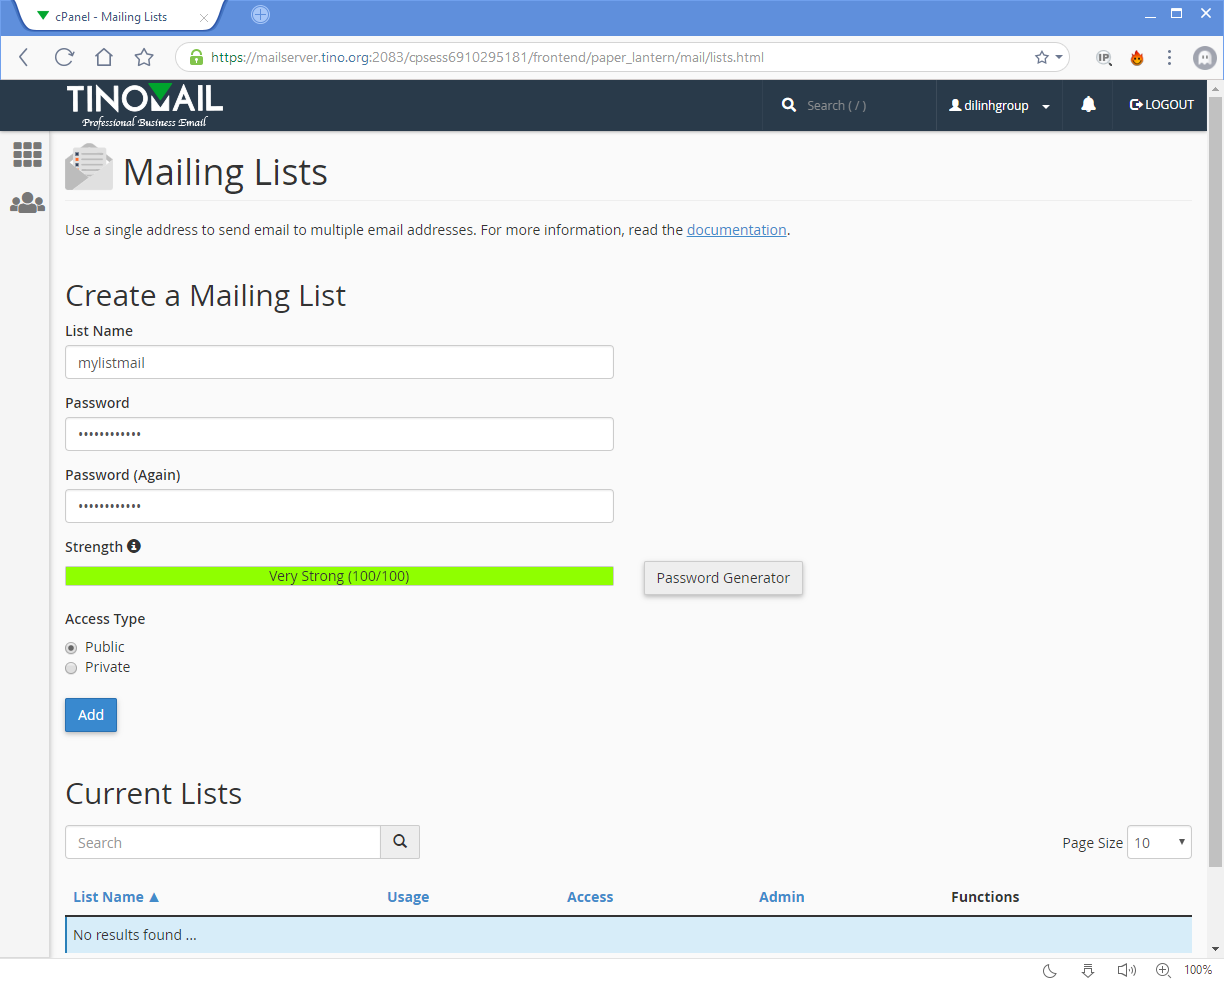 [cPanel] - Mailing Lists 15